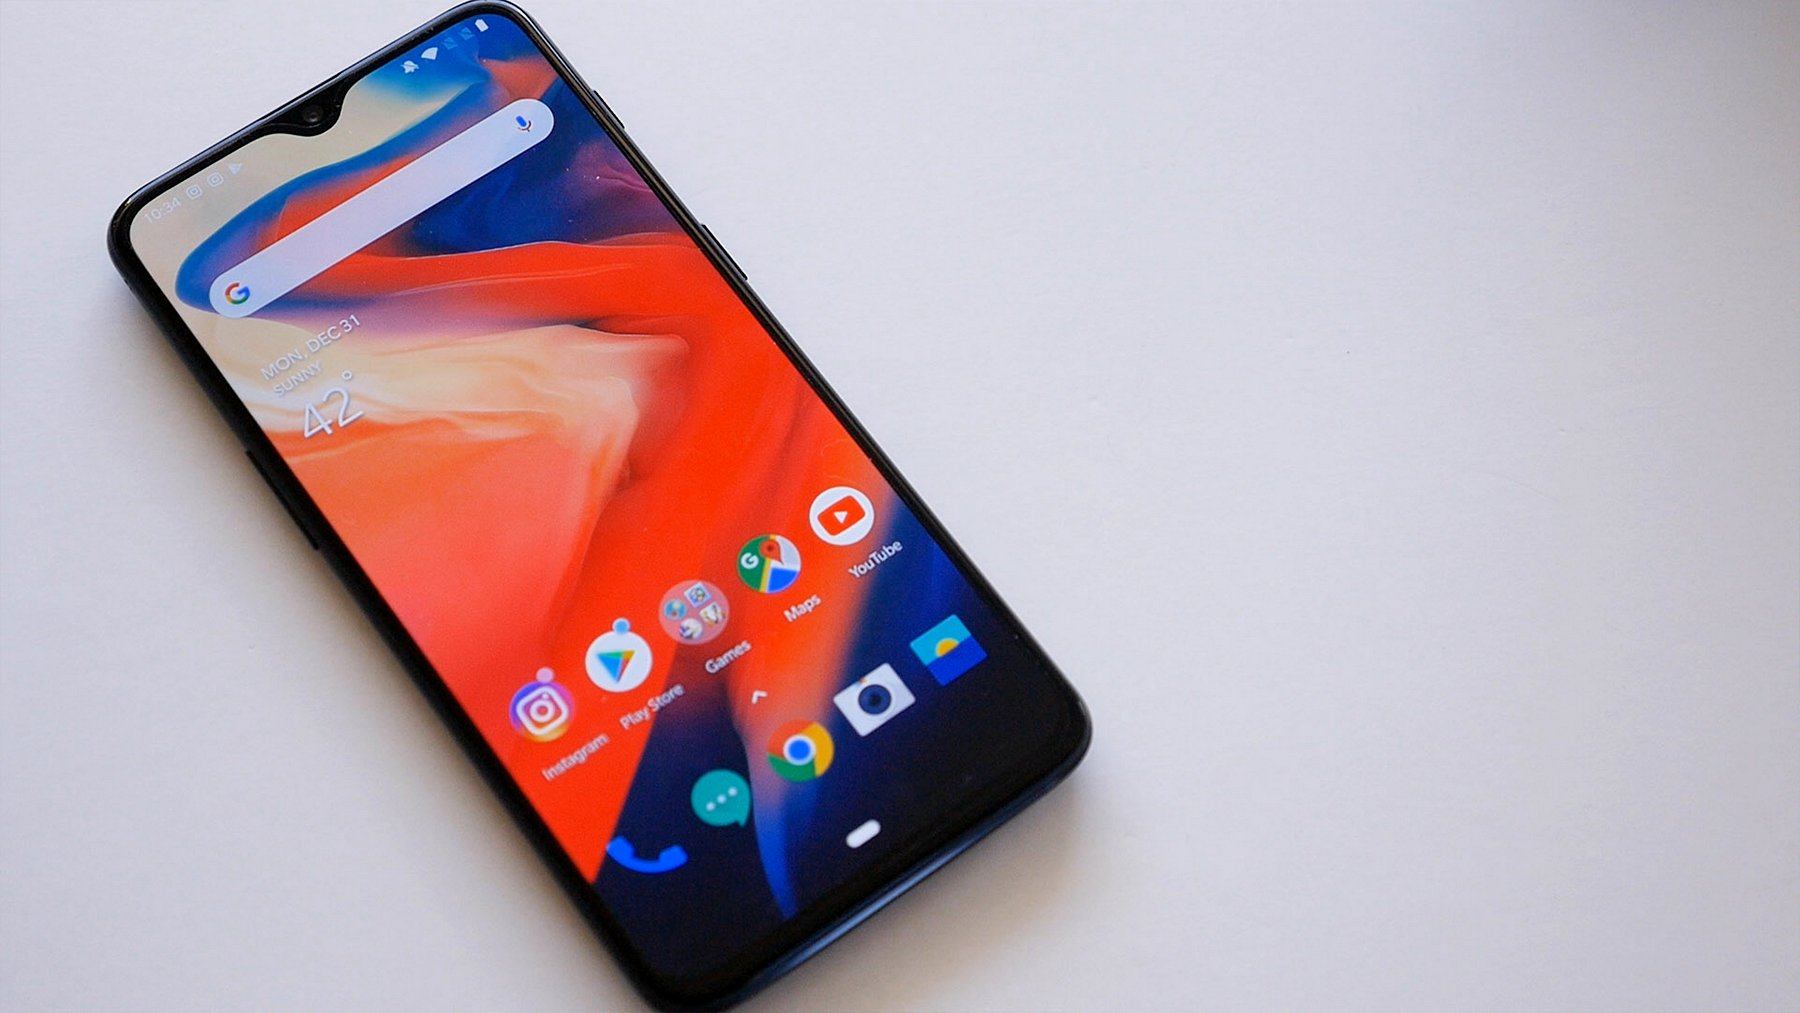 OnePlus 6T helps the company become fifth largest premium